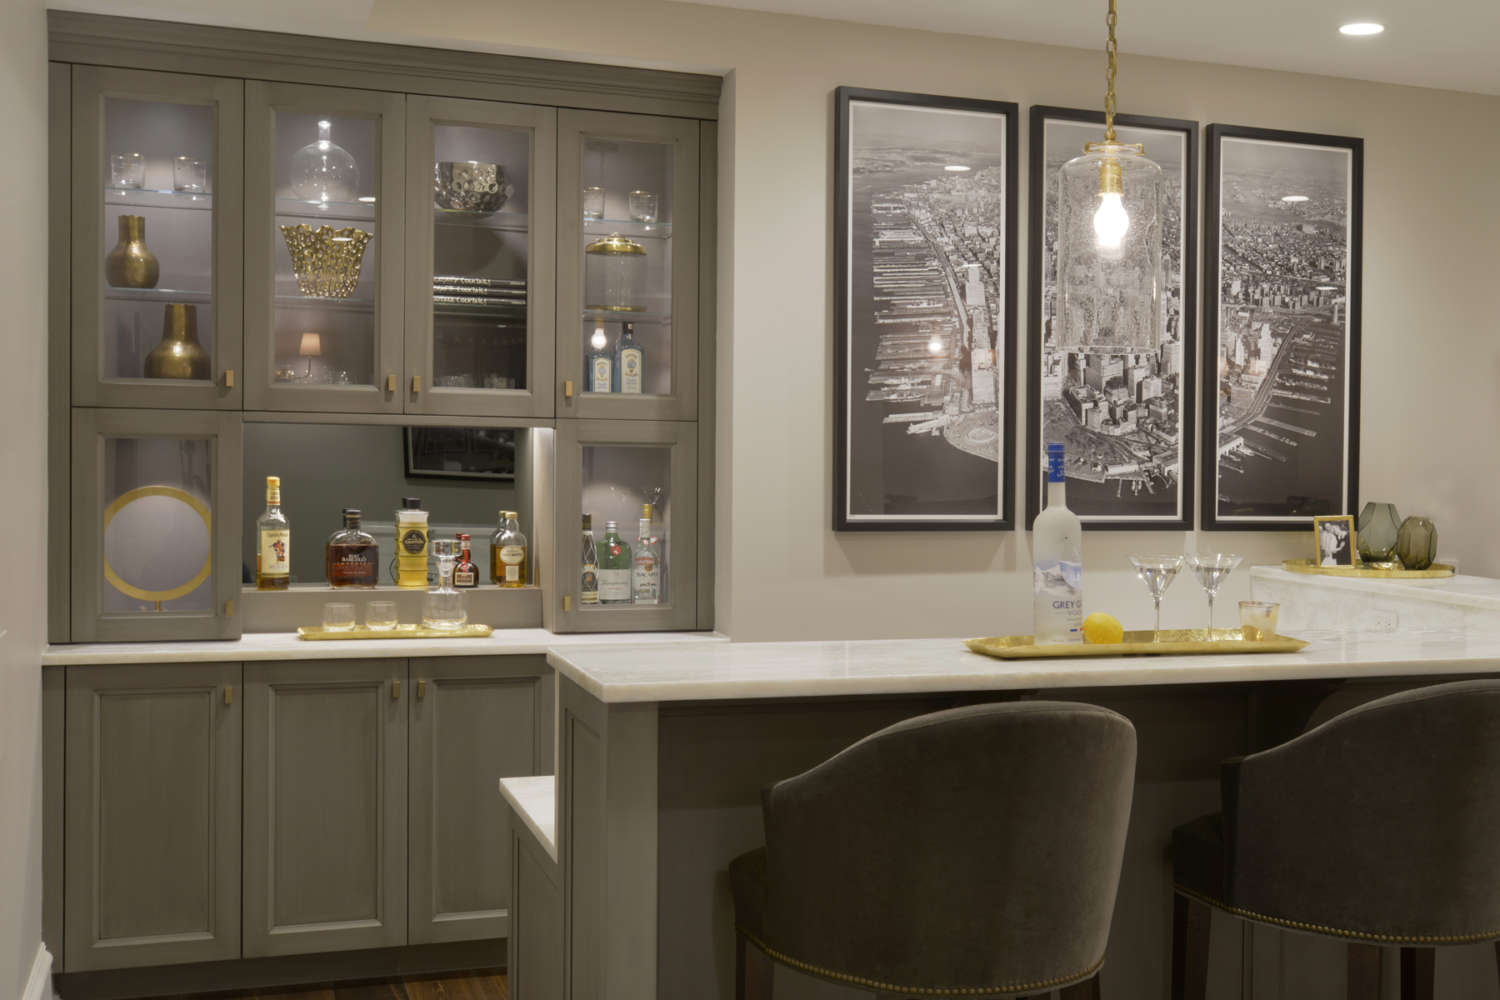 Classic styled bar area features custom sage green painted frameless Bilotta Cabinetry with glass front doors and gold hardware, white marble countertop and seating illuminated with a simple gold chain pendant light. Design by Tom Vecchio of Bilotta Kitchens.